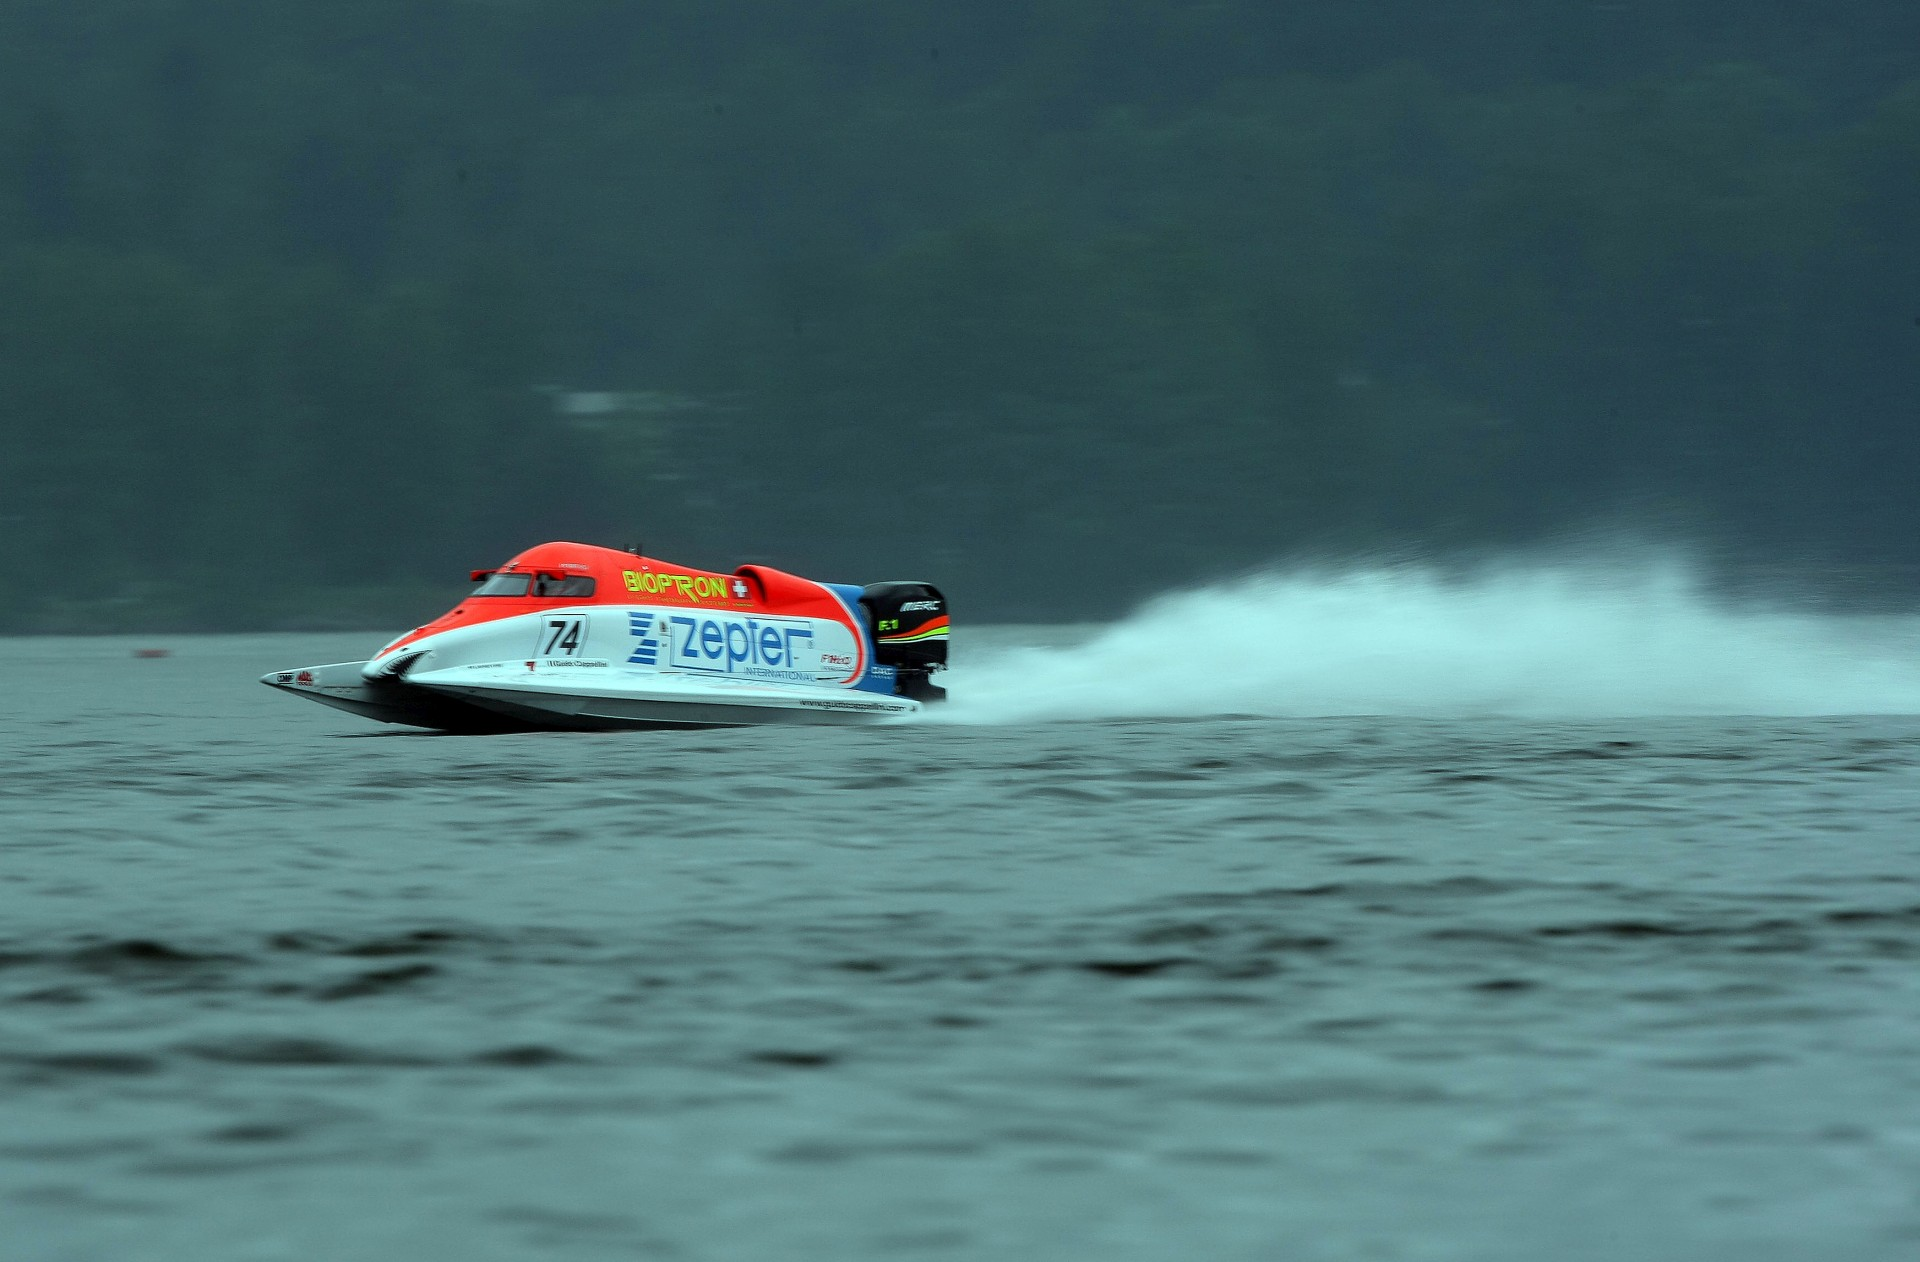 130609-LAHTI-PL-Guido Cappellini of Italy of the Zepter F1 powerboat team pictured in action during practice for the UIM F1 Powerboat Grand Prix of Finland, on Lake Vesijarvi, Lahti, Finland. Picture by Paul Lakatos/Idea Marketing.